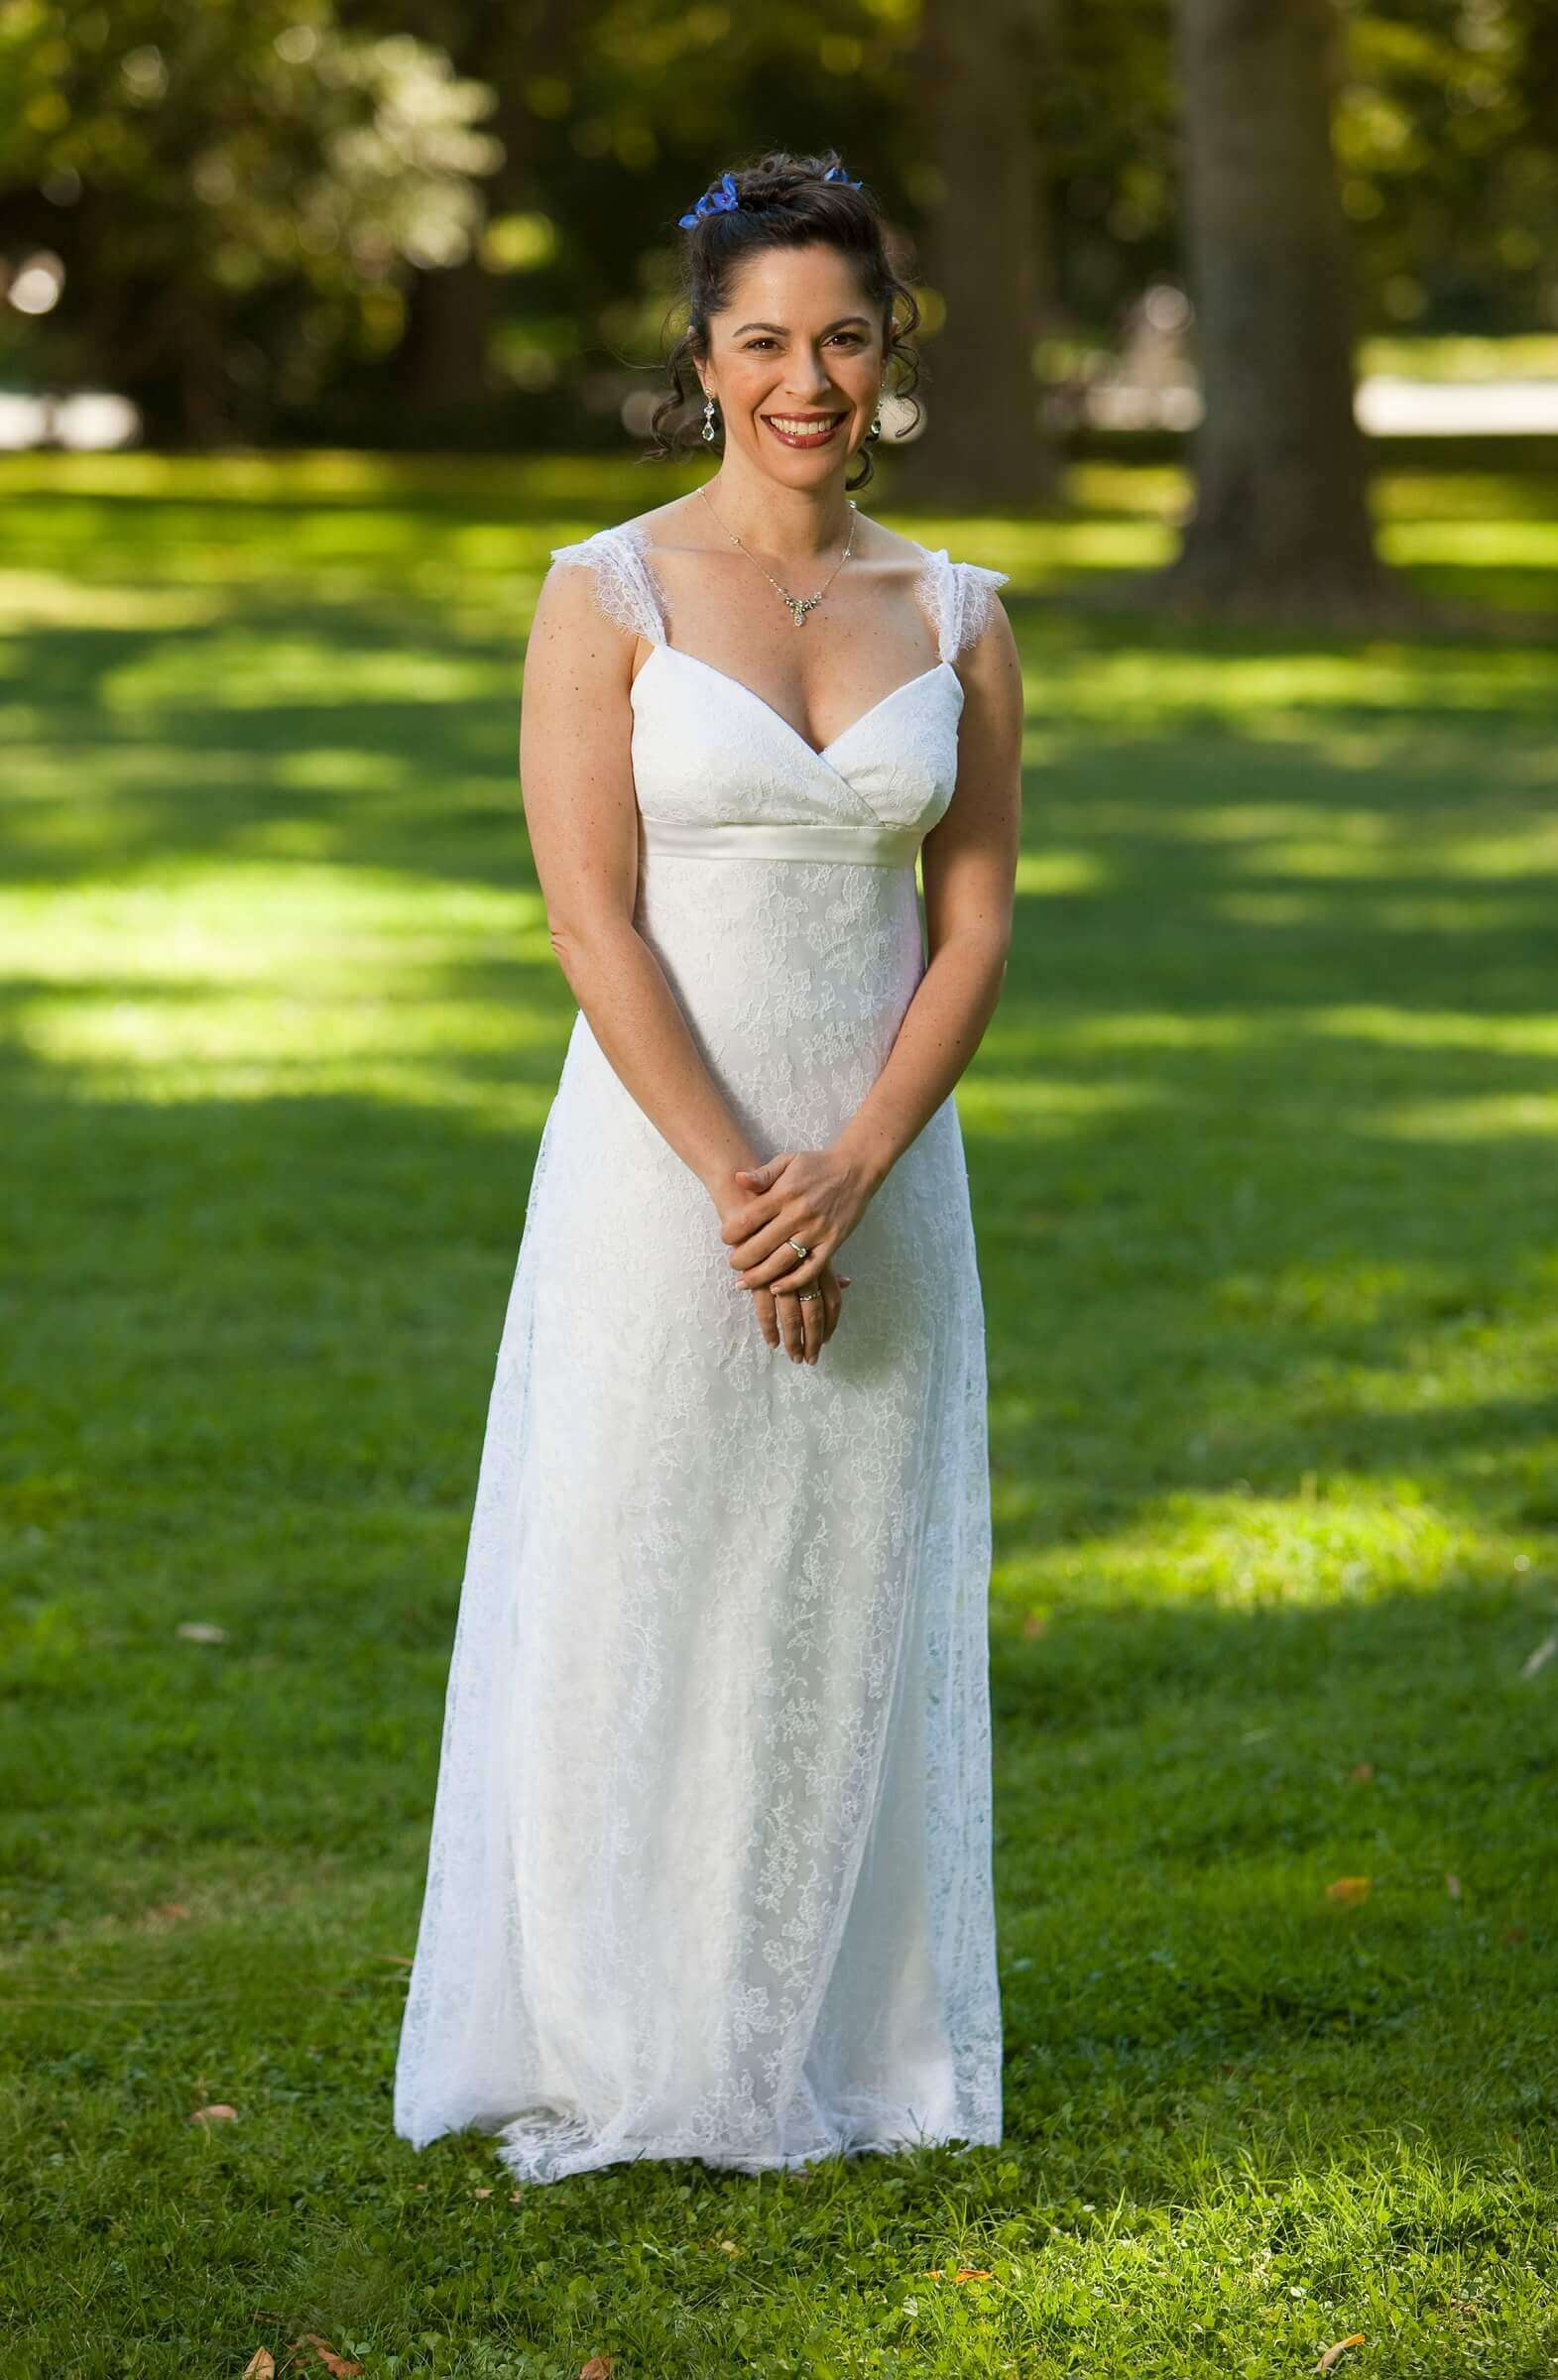 custom made wedding dress for Rebecca by Rebecca Wendlandt